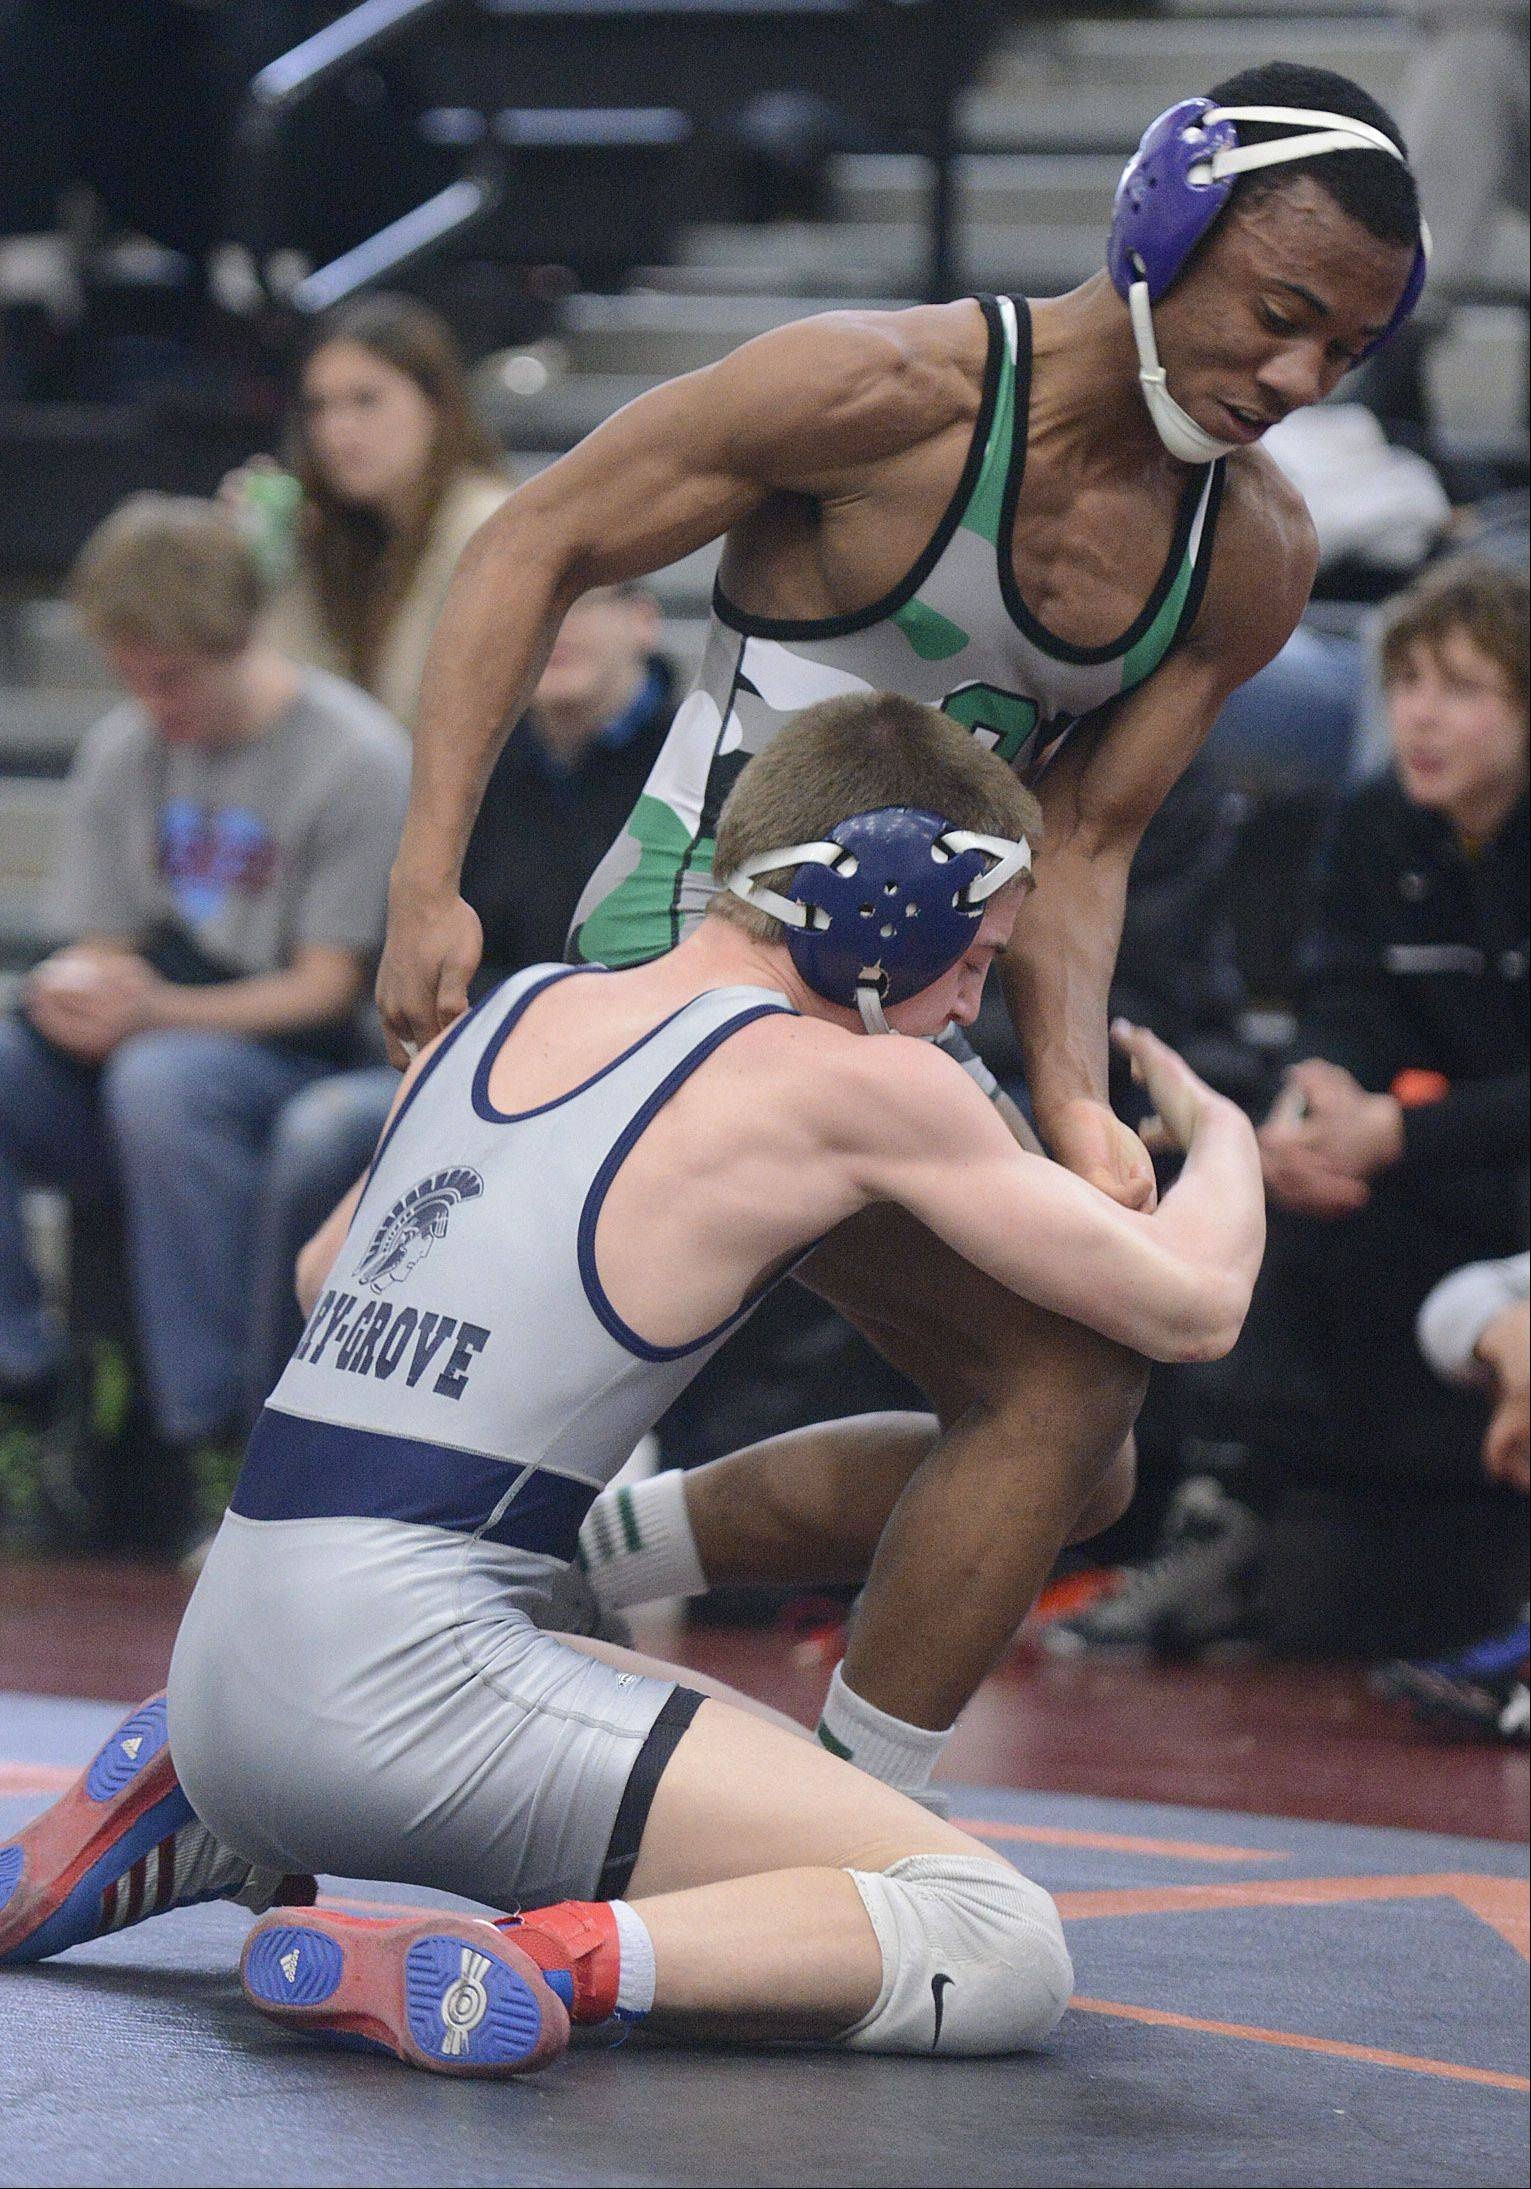 Cary-Grove's John Cullen takes down Grayslake Central's Larry Augistine in the third place 132-pound final match at the Fox Valley Conference meet in McHenry on Saturday.